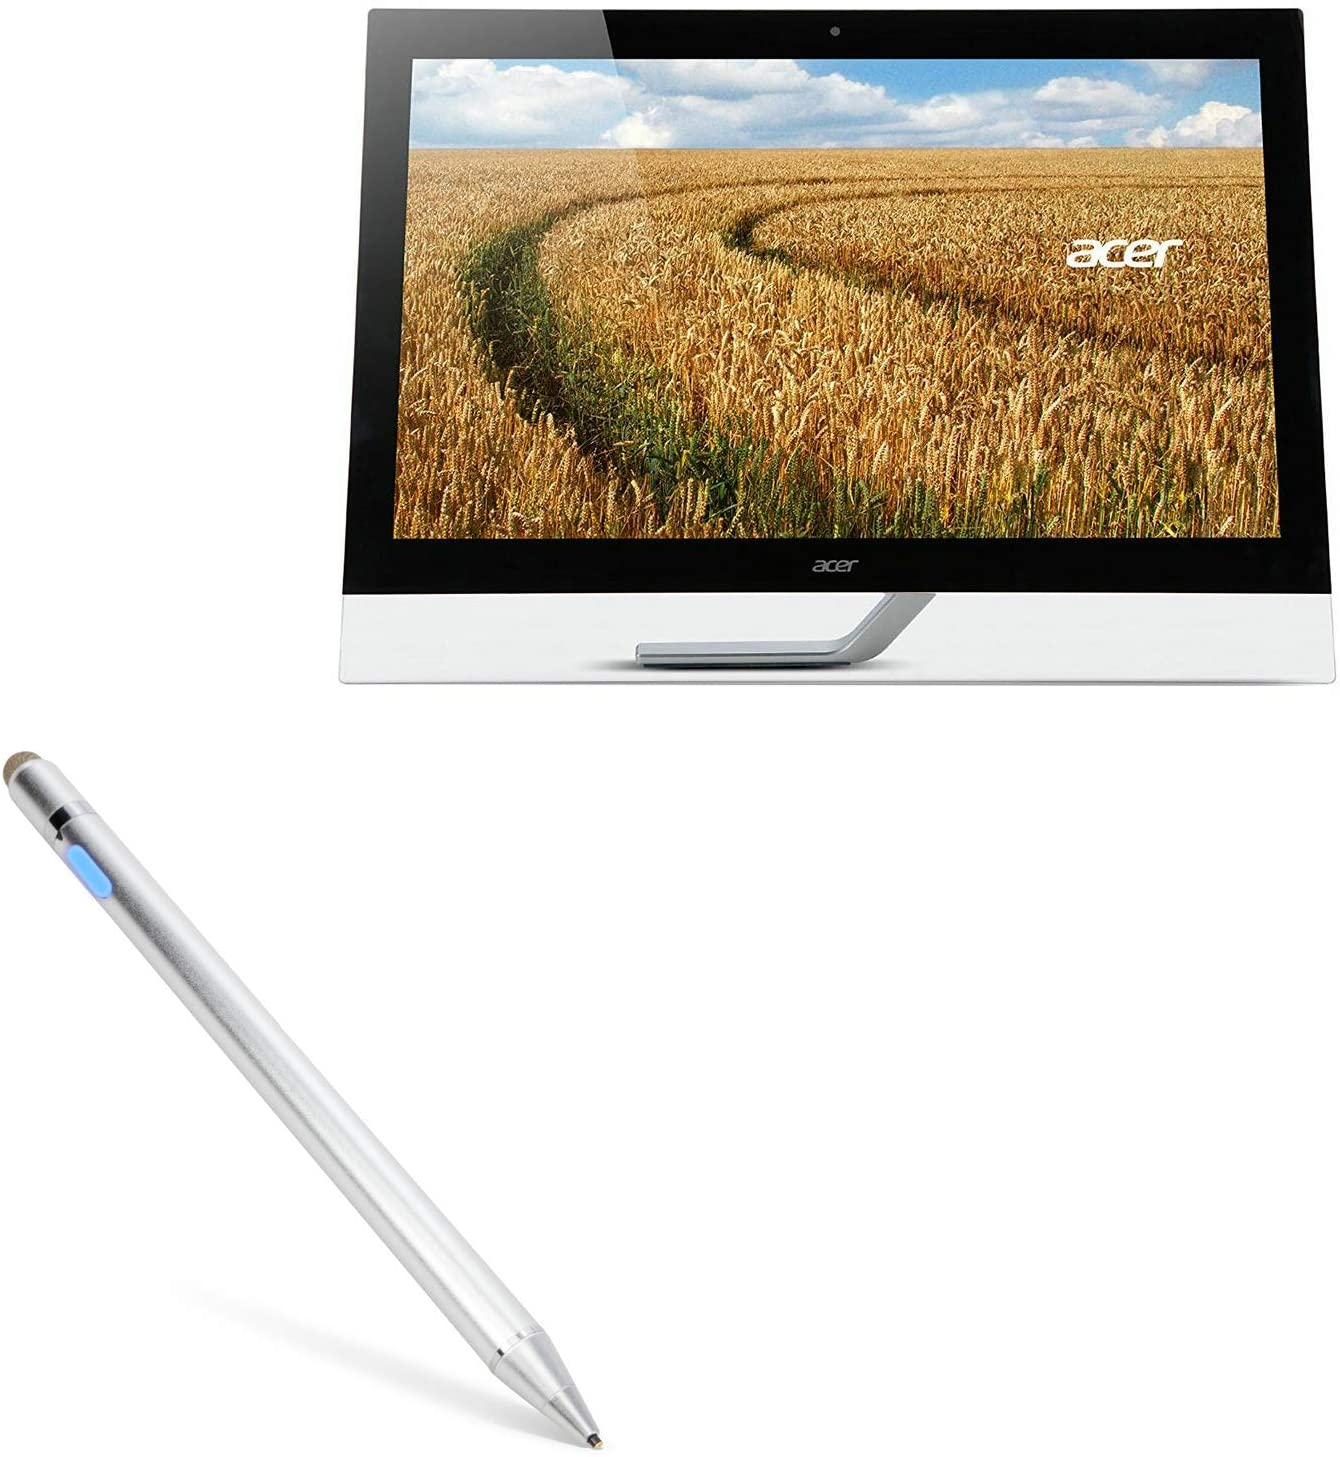 "Acer T272HUL (27"") Stylus Pen, BoxWave [AccuPoint Active Stylus] Electronic Stylus with Ultra Fine Tip for Acer T272HUL (27"") - Metallic Silver"